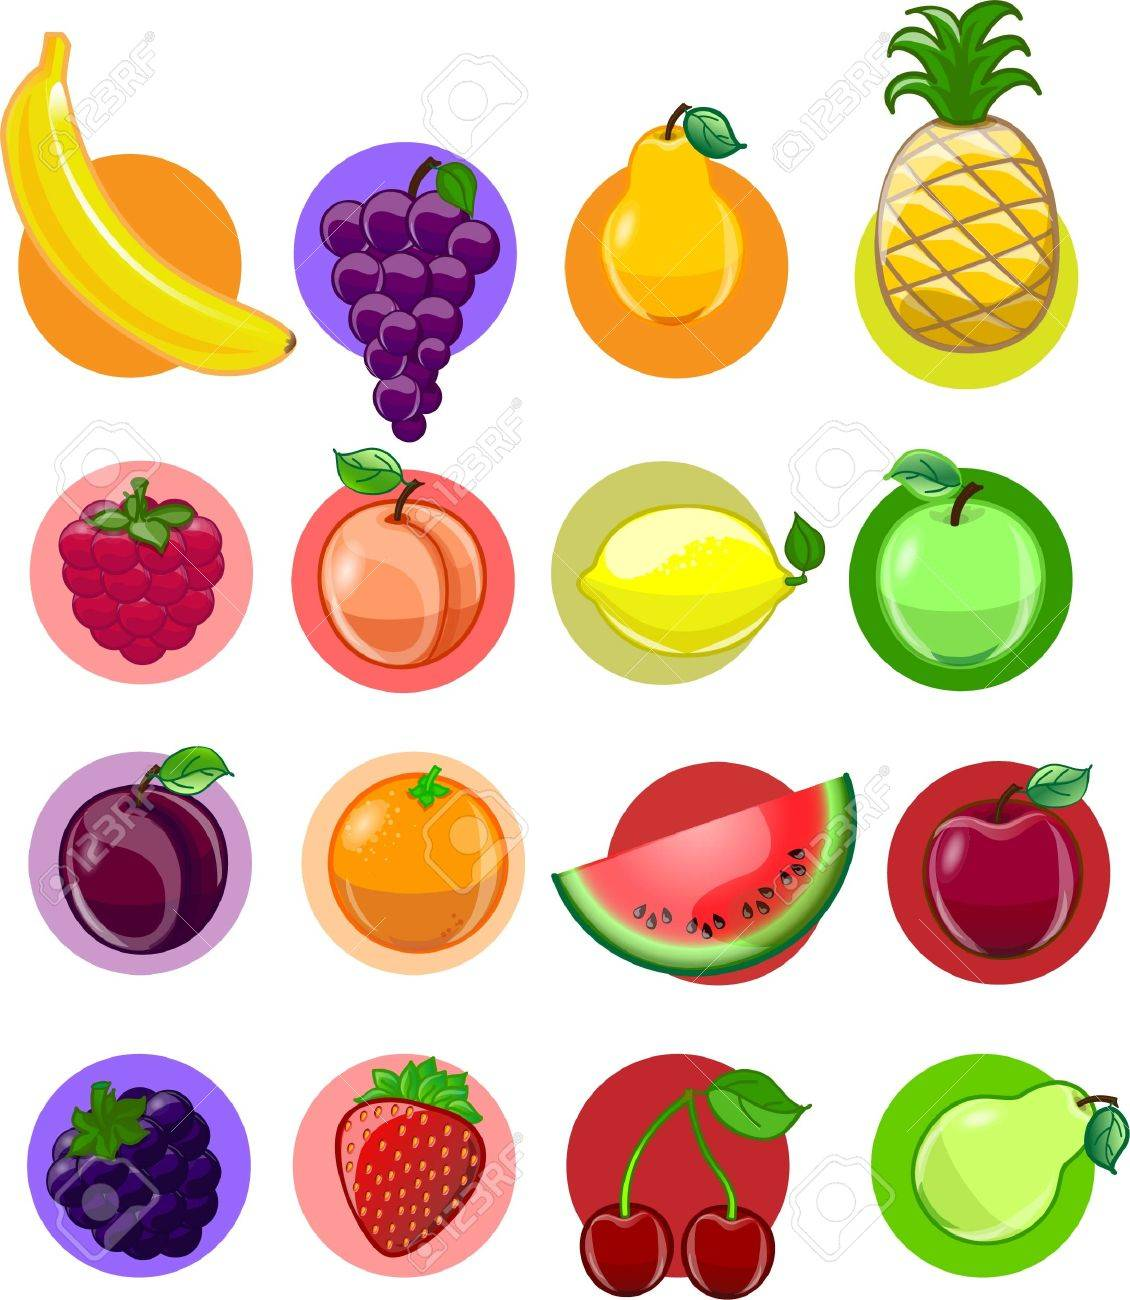 Vegetables and fruits, vector background Stock Vector - 17989108